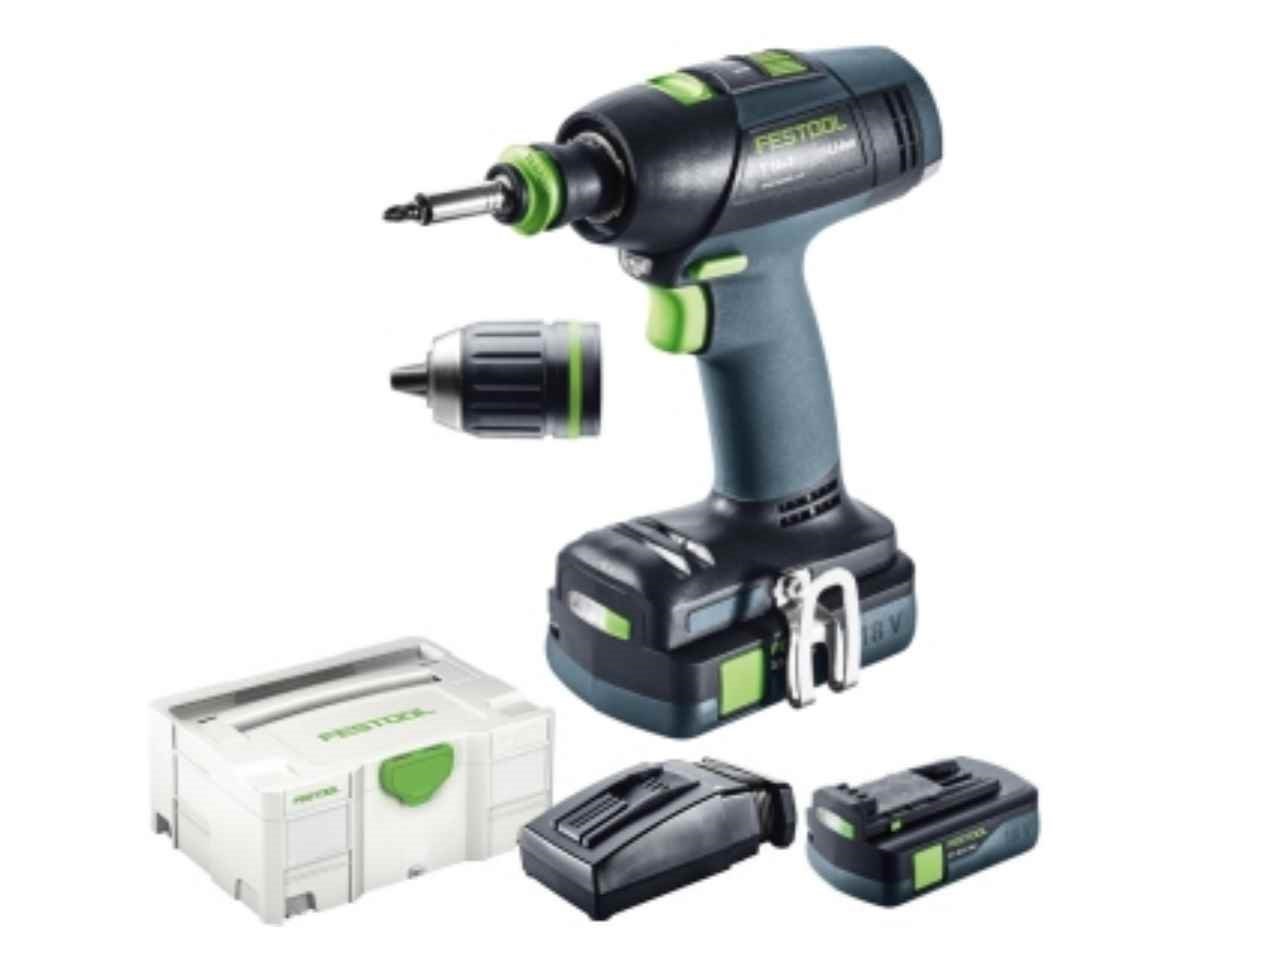 festool t18 3 li 3 1 compact gb 18v 2x3 1ah li ion cordless drill kit. Black Bedroom Furniture Sets. Home Design Ideas